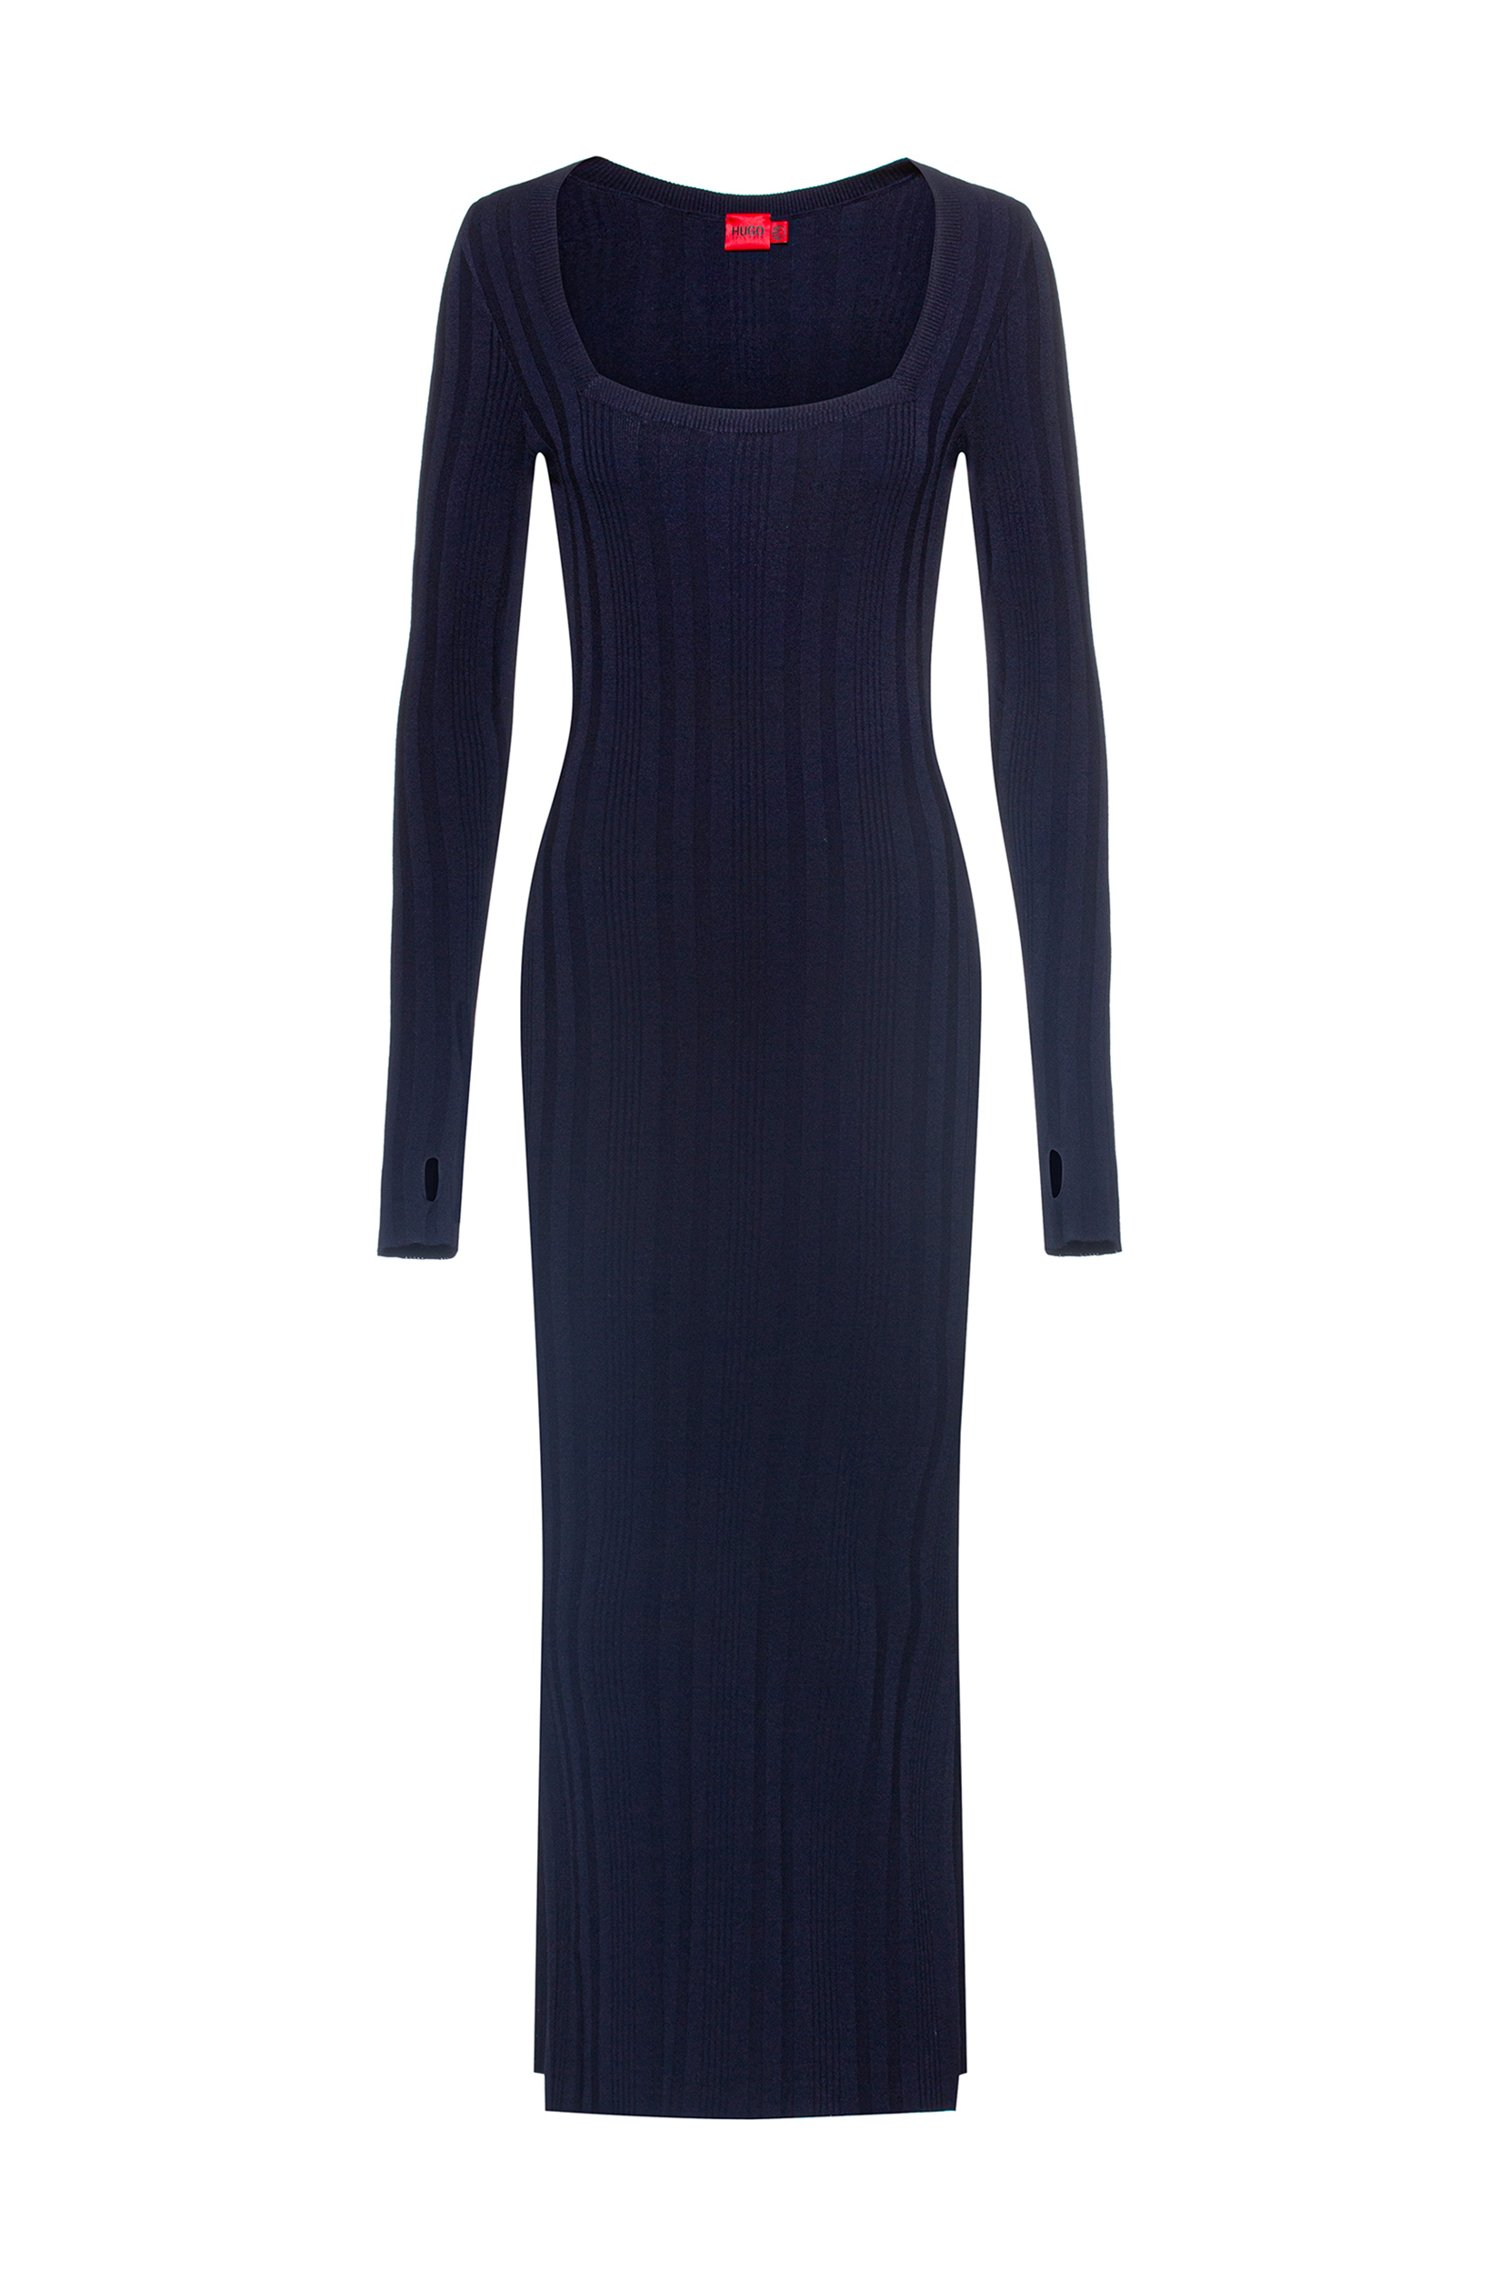 Long-sleeved knitted dress with square neckline, Black